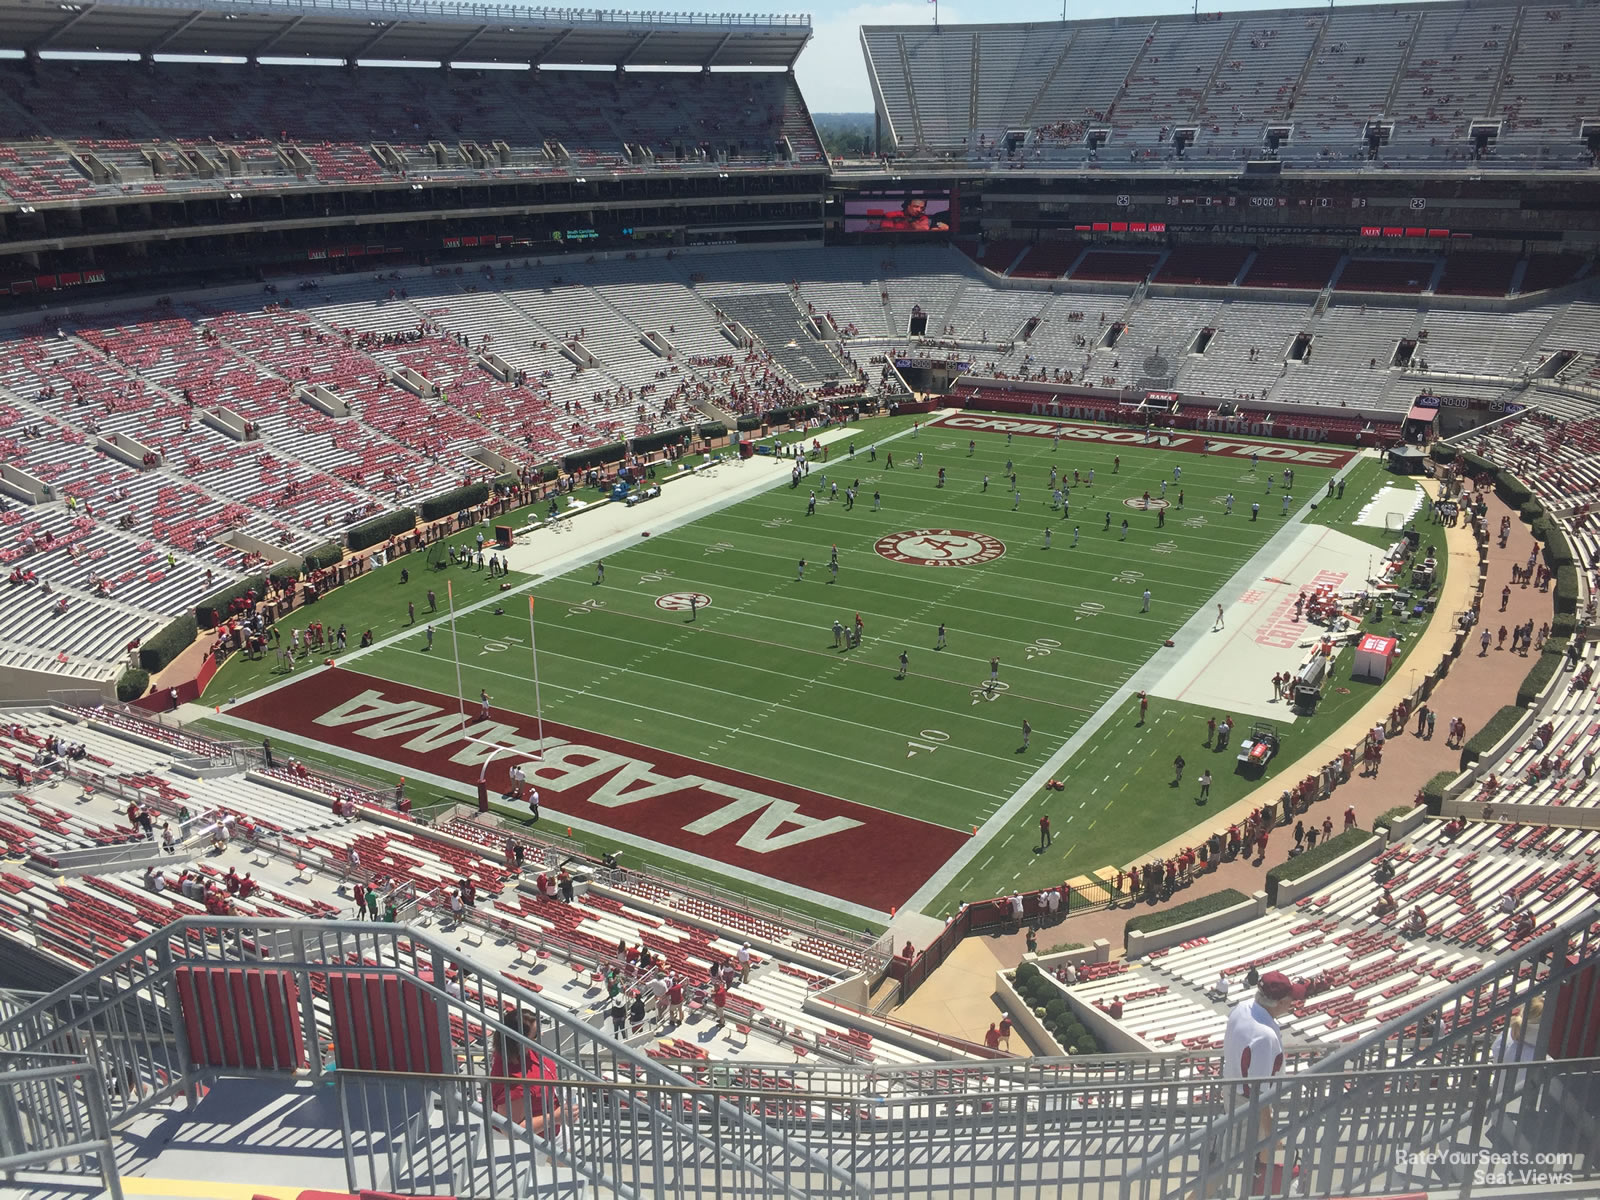 Seat View for Bryant Denny Stadium Section NN3 Row 10